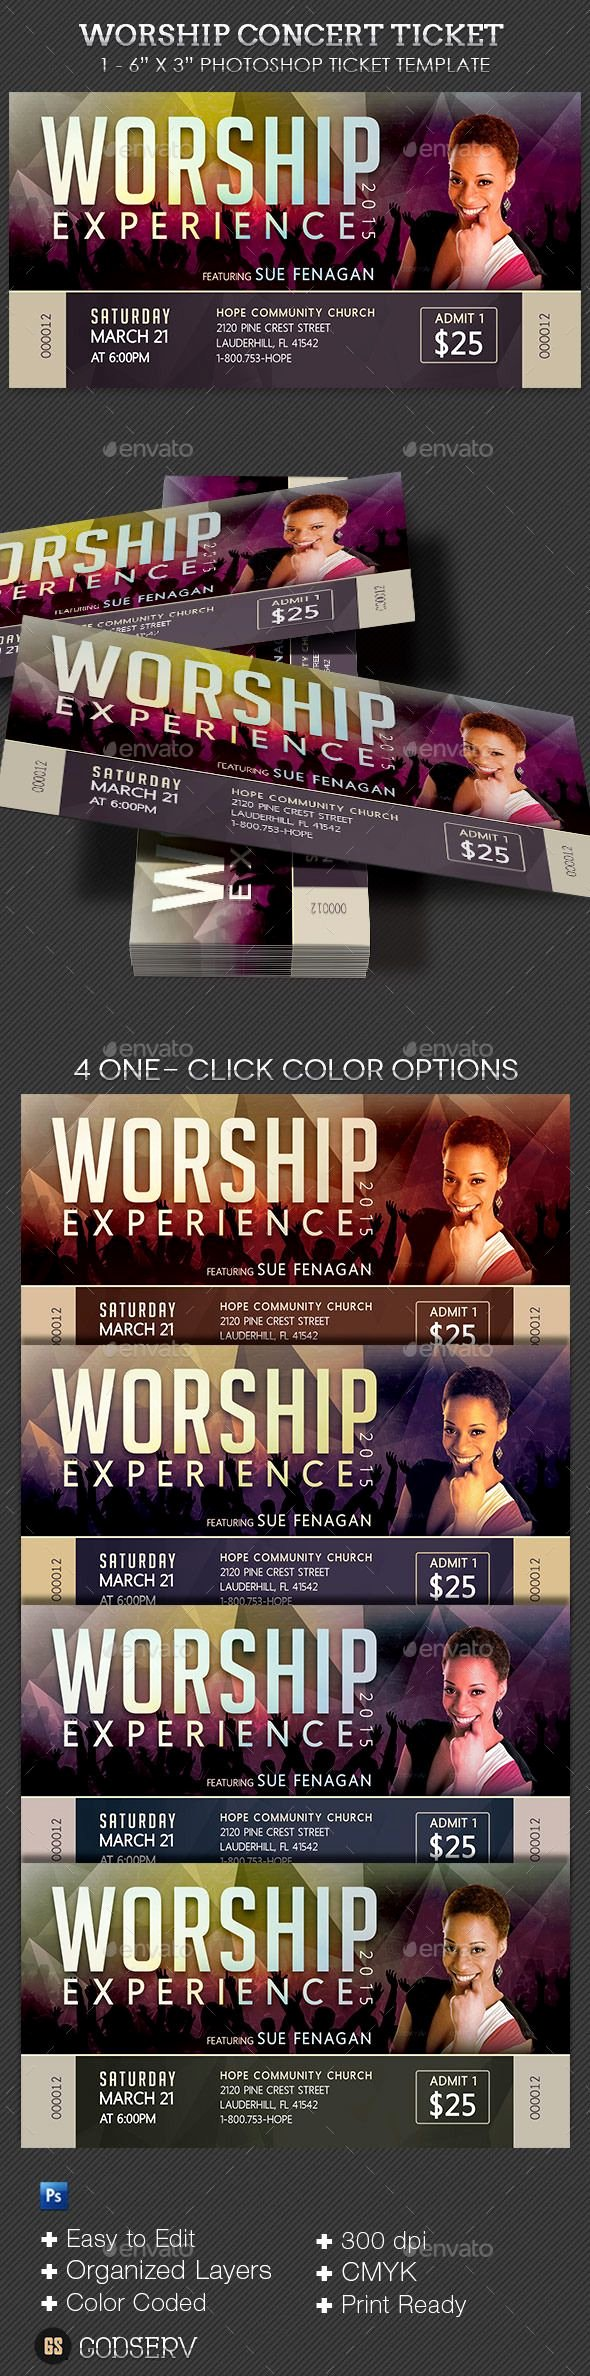 Concert Ticket Template Psd Unique Pin by Best Graphic Design On Ticket Templates